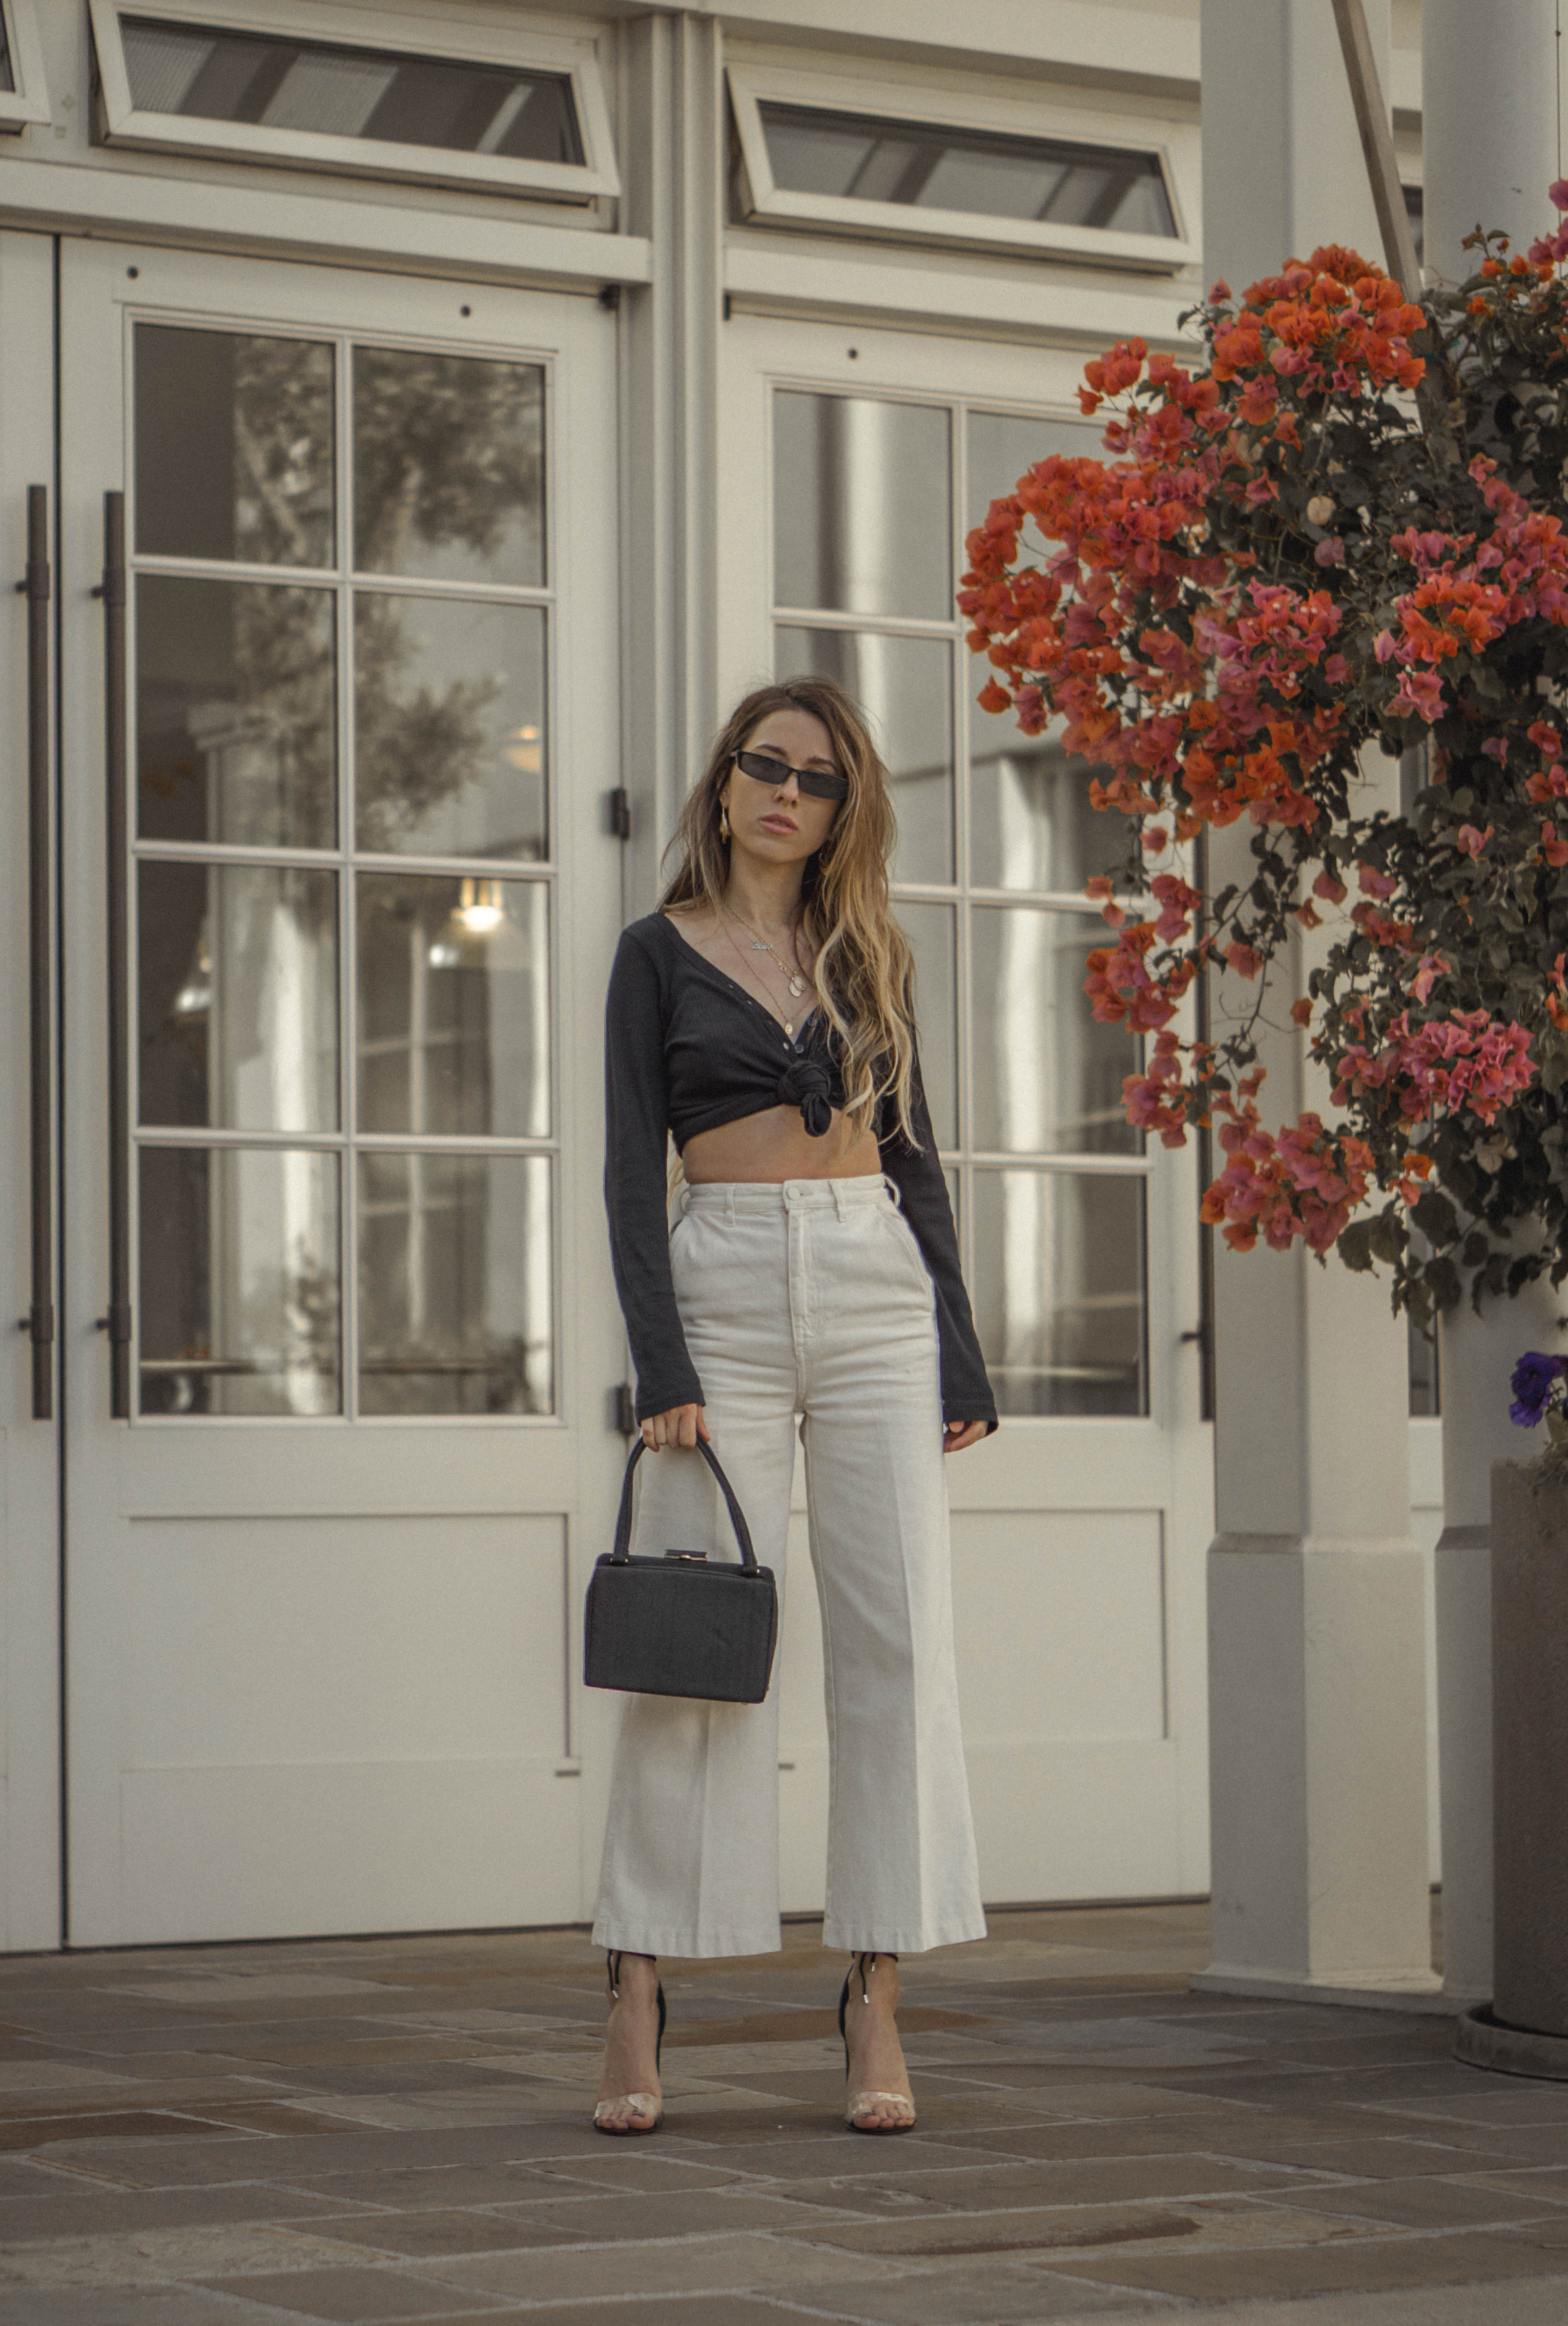 high_waisted_wide_white_jeans_clear_shoes_heels_street_style_outfit_fashion_blogger_vintage_lena_juice_the_white_ocean_01